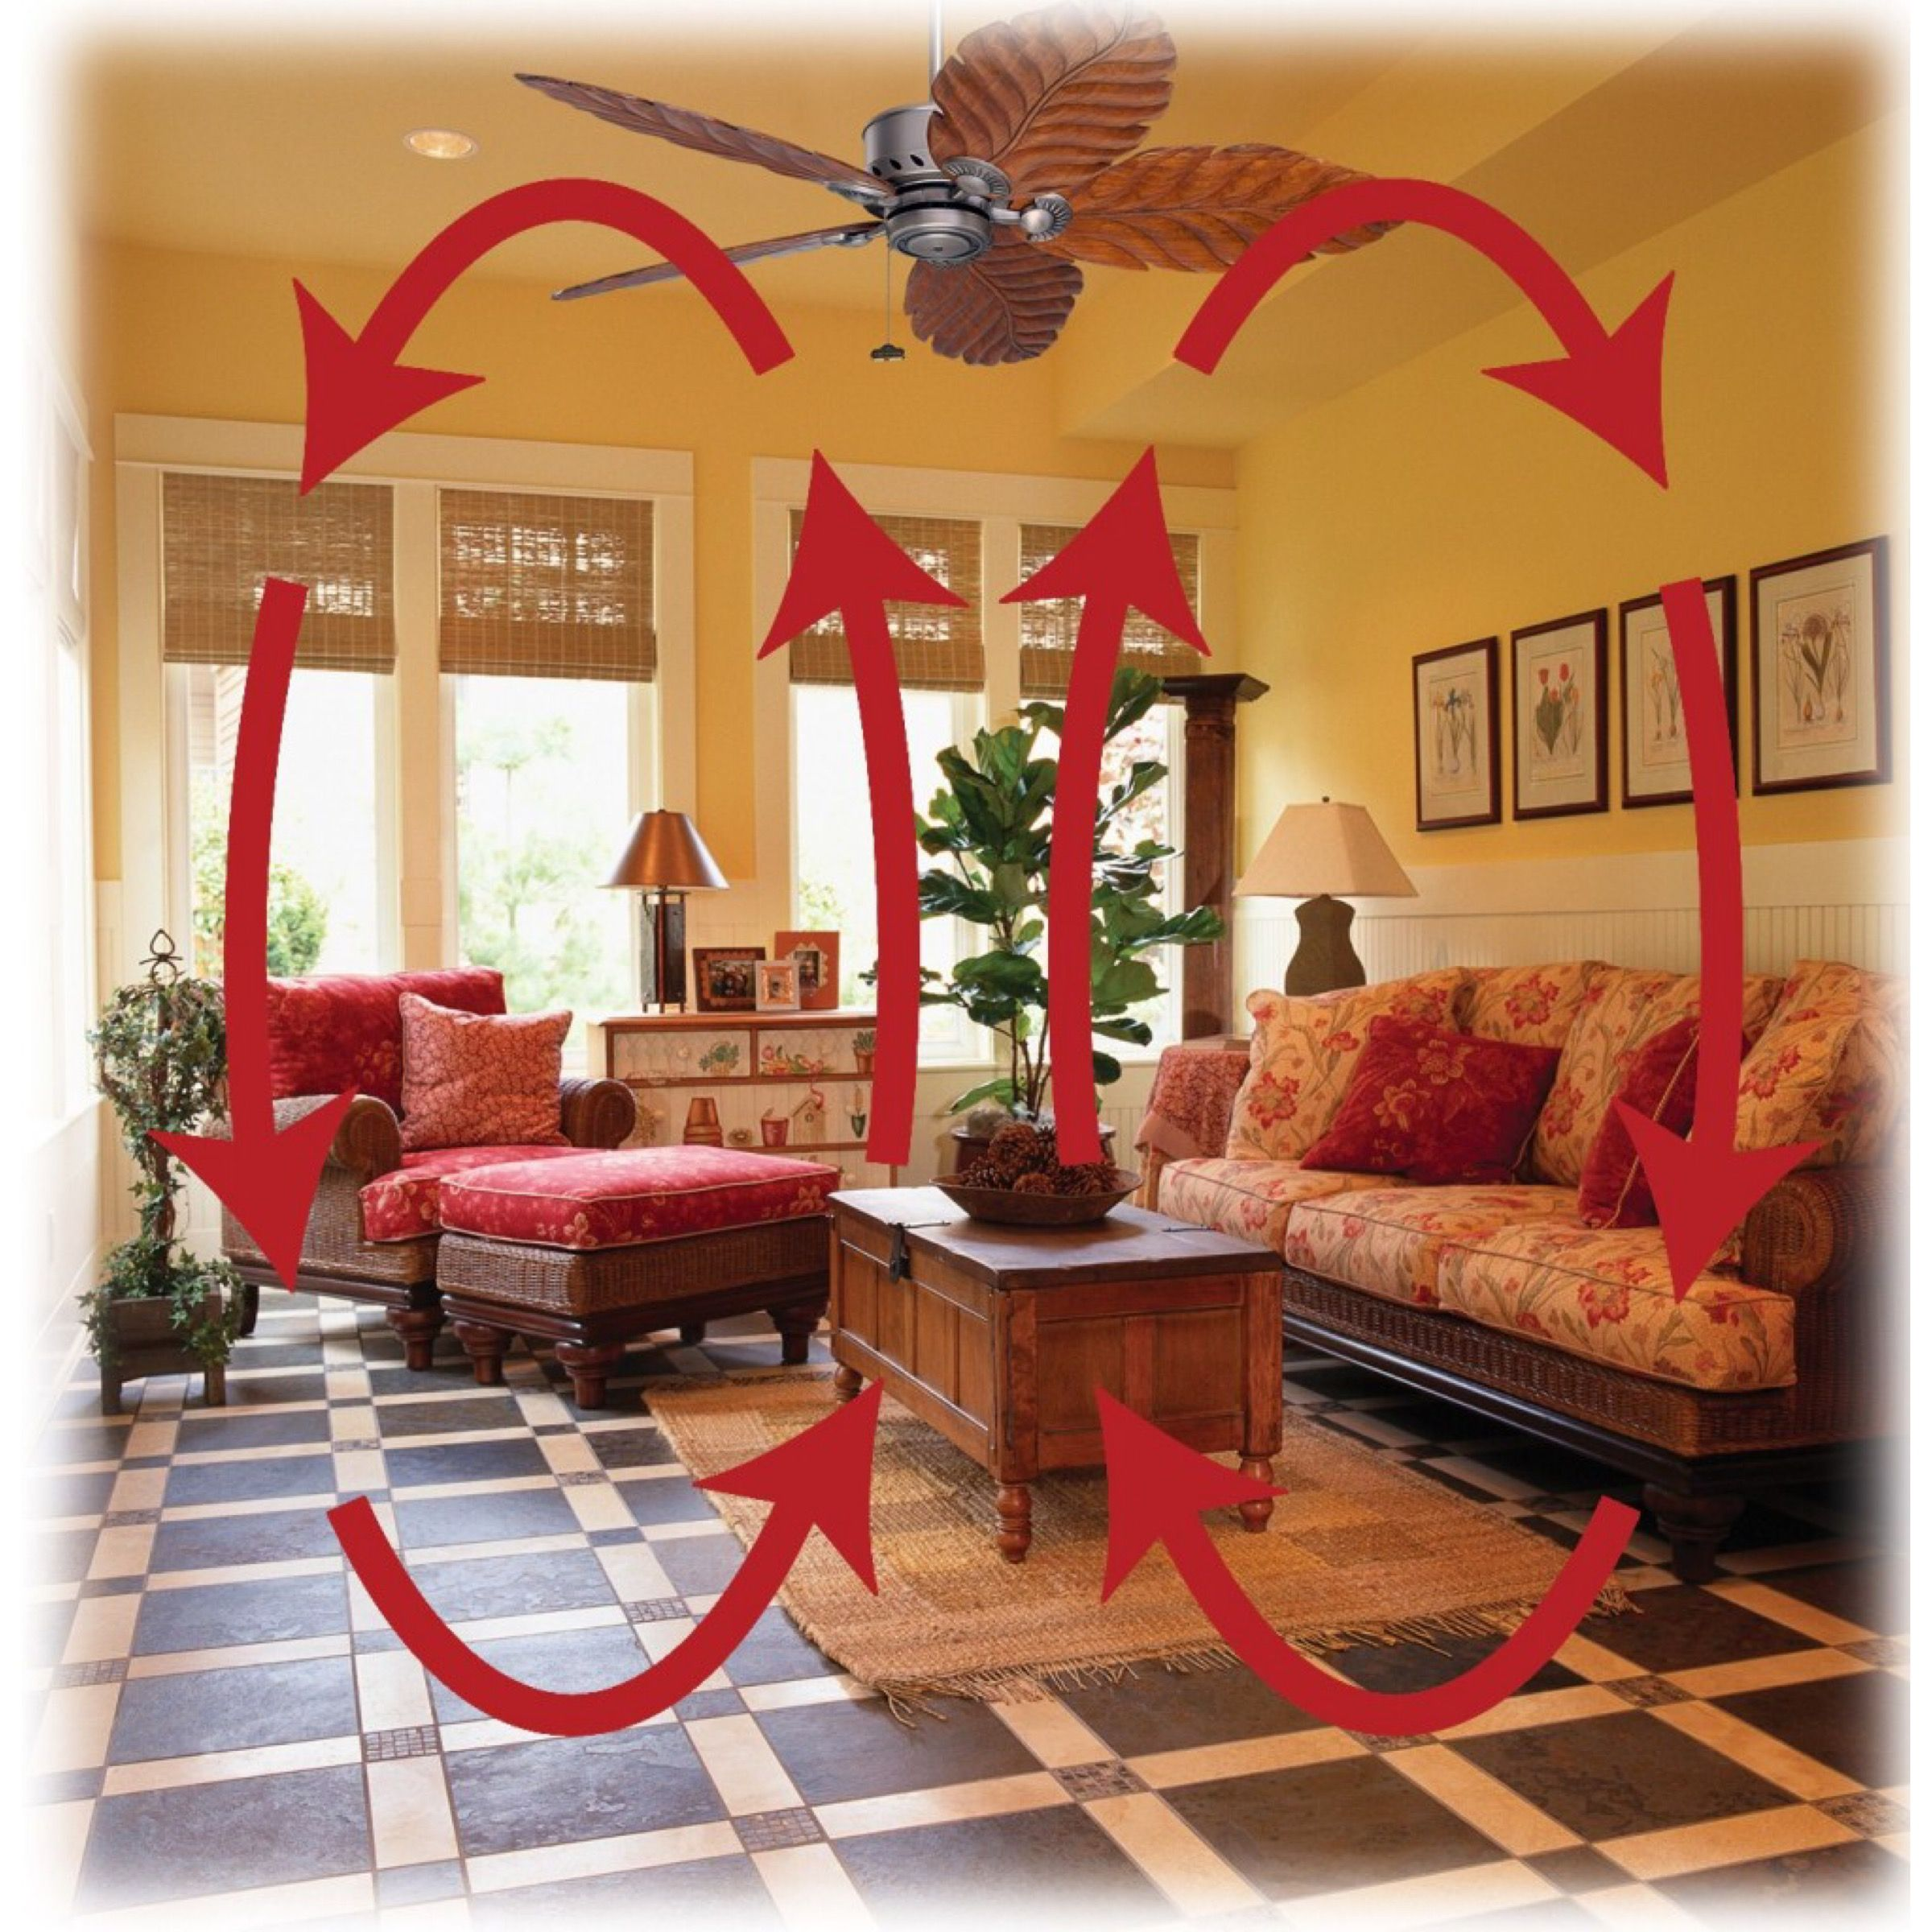 Latham Family Tip Reverse The Blade Rotation On A Ceiling